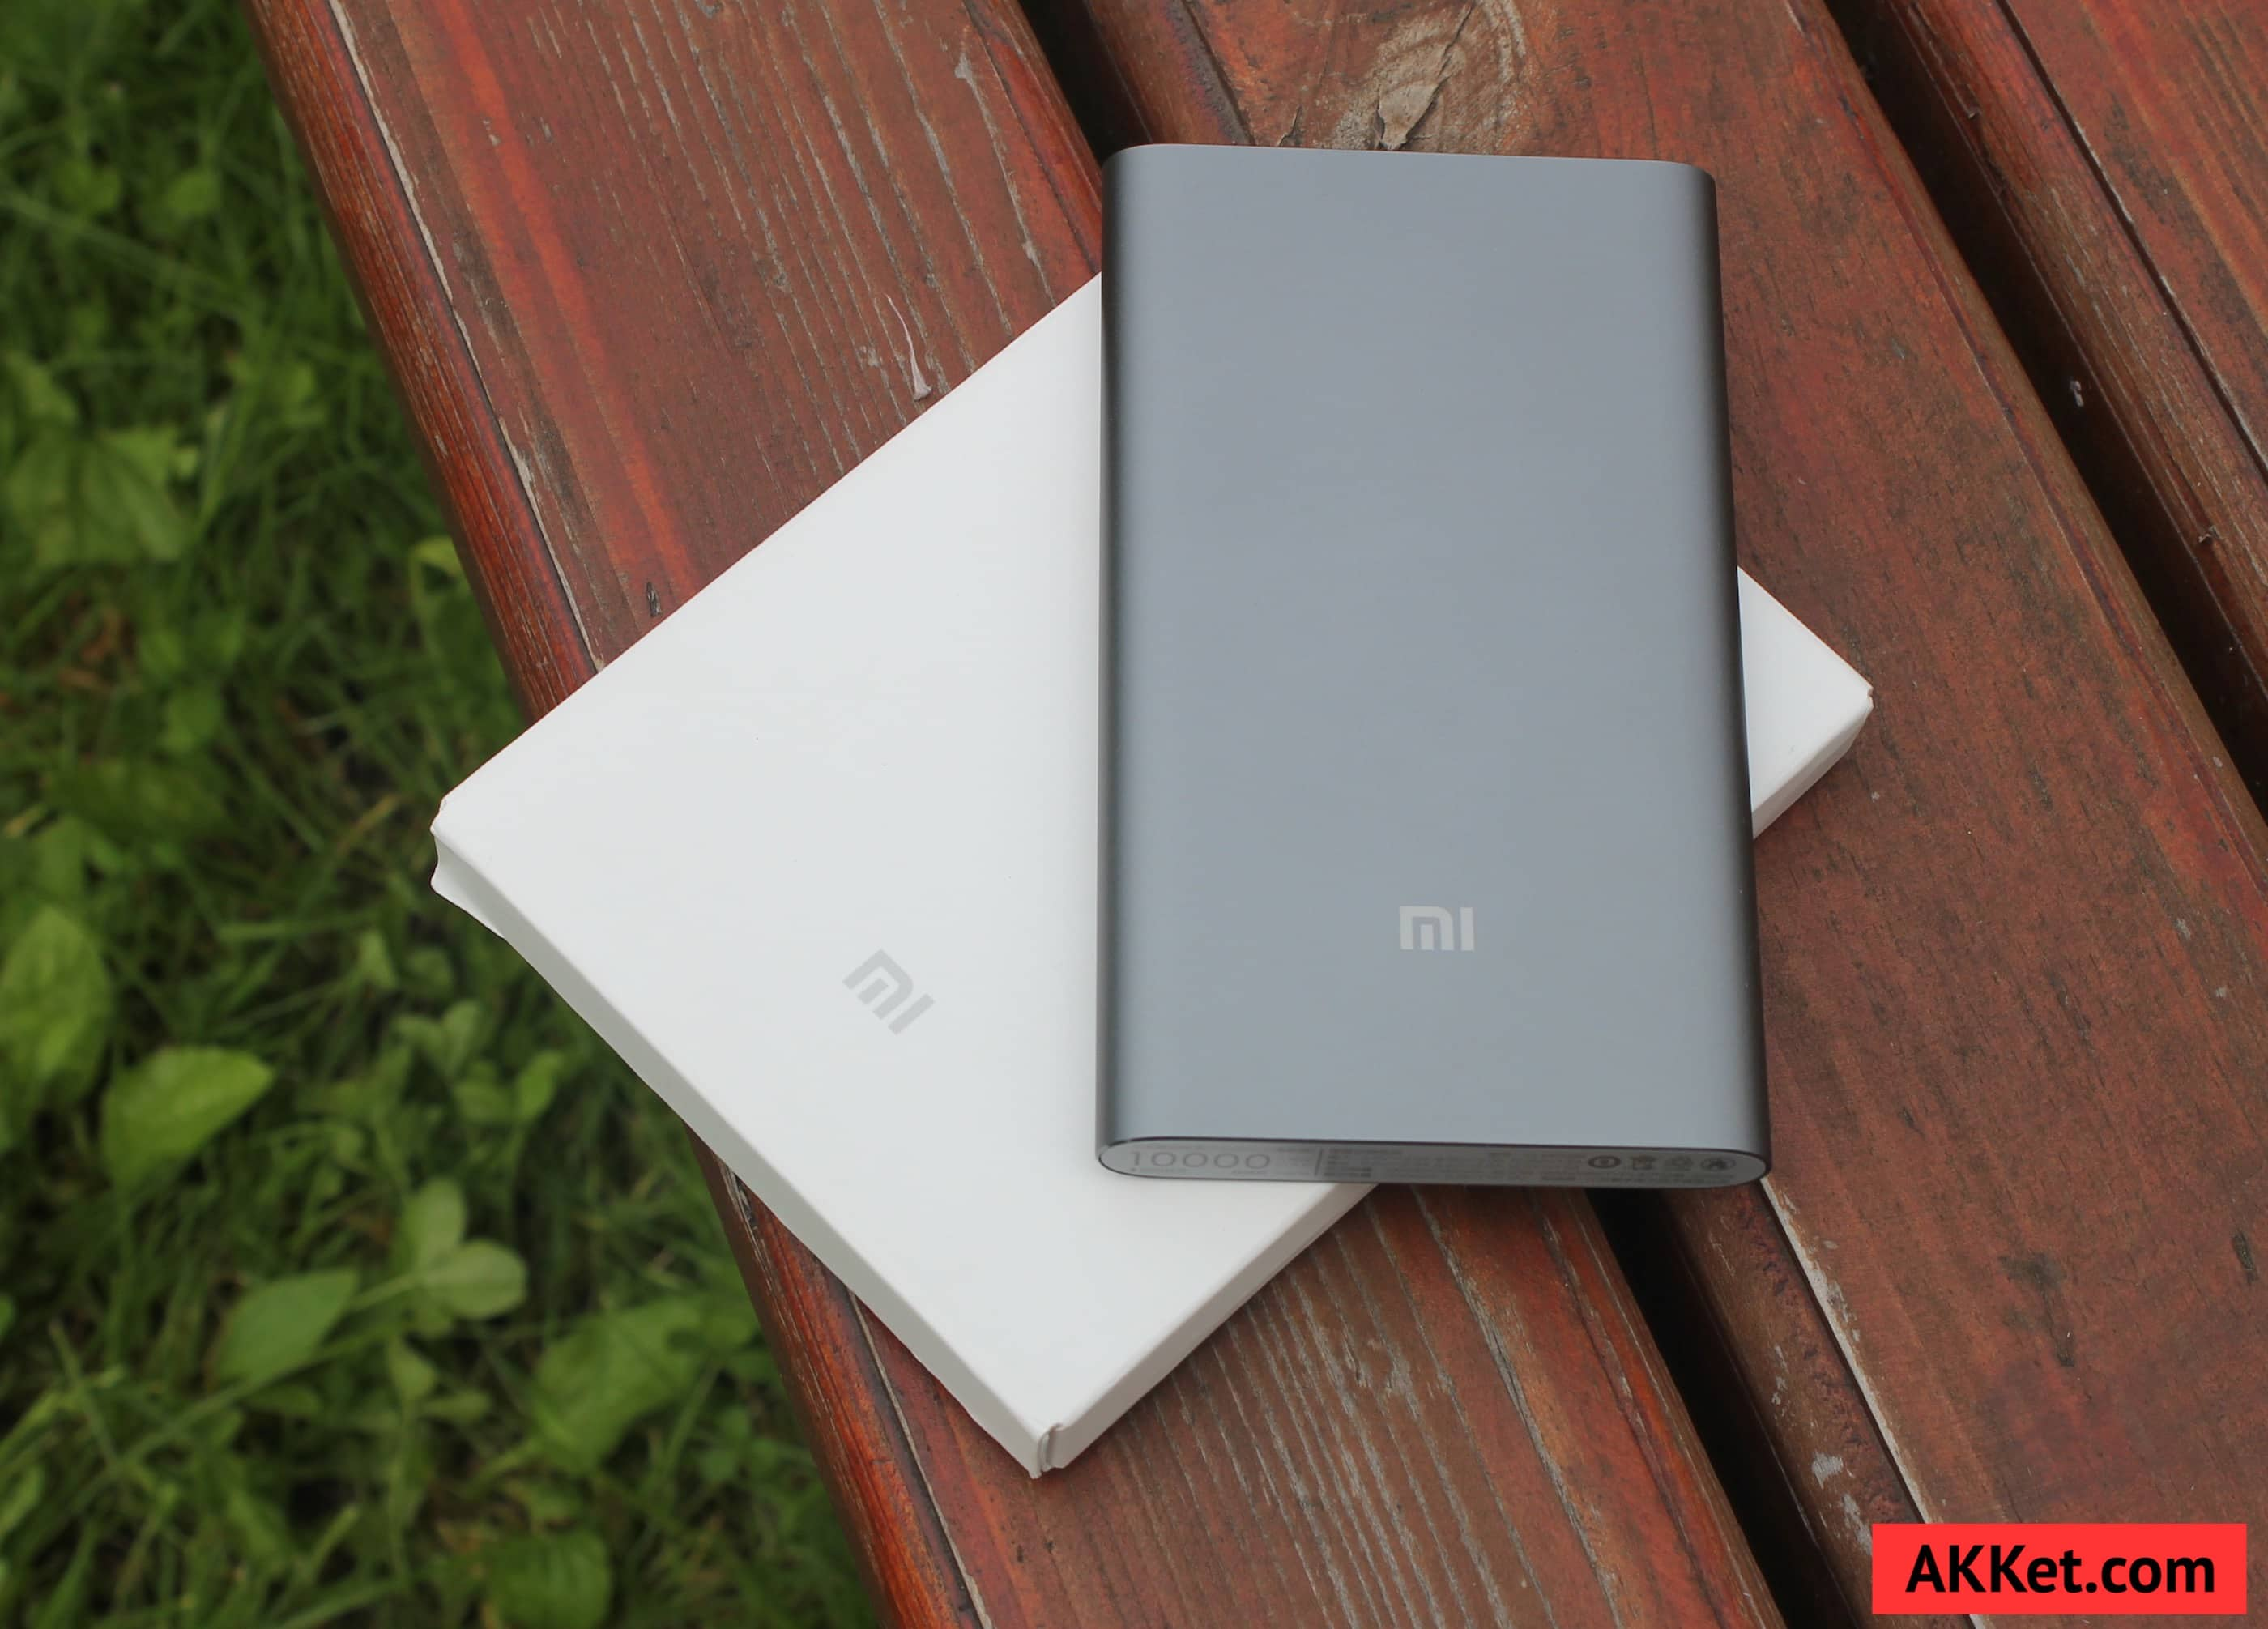 Xiaomi Mi Power Bank Pro 10000 мАч review photo 18